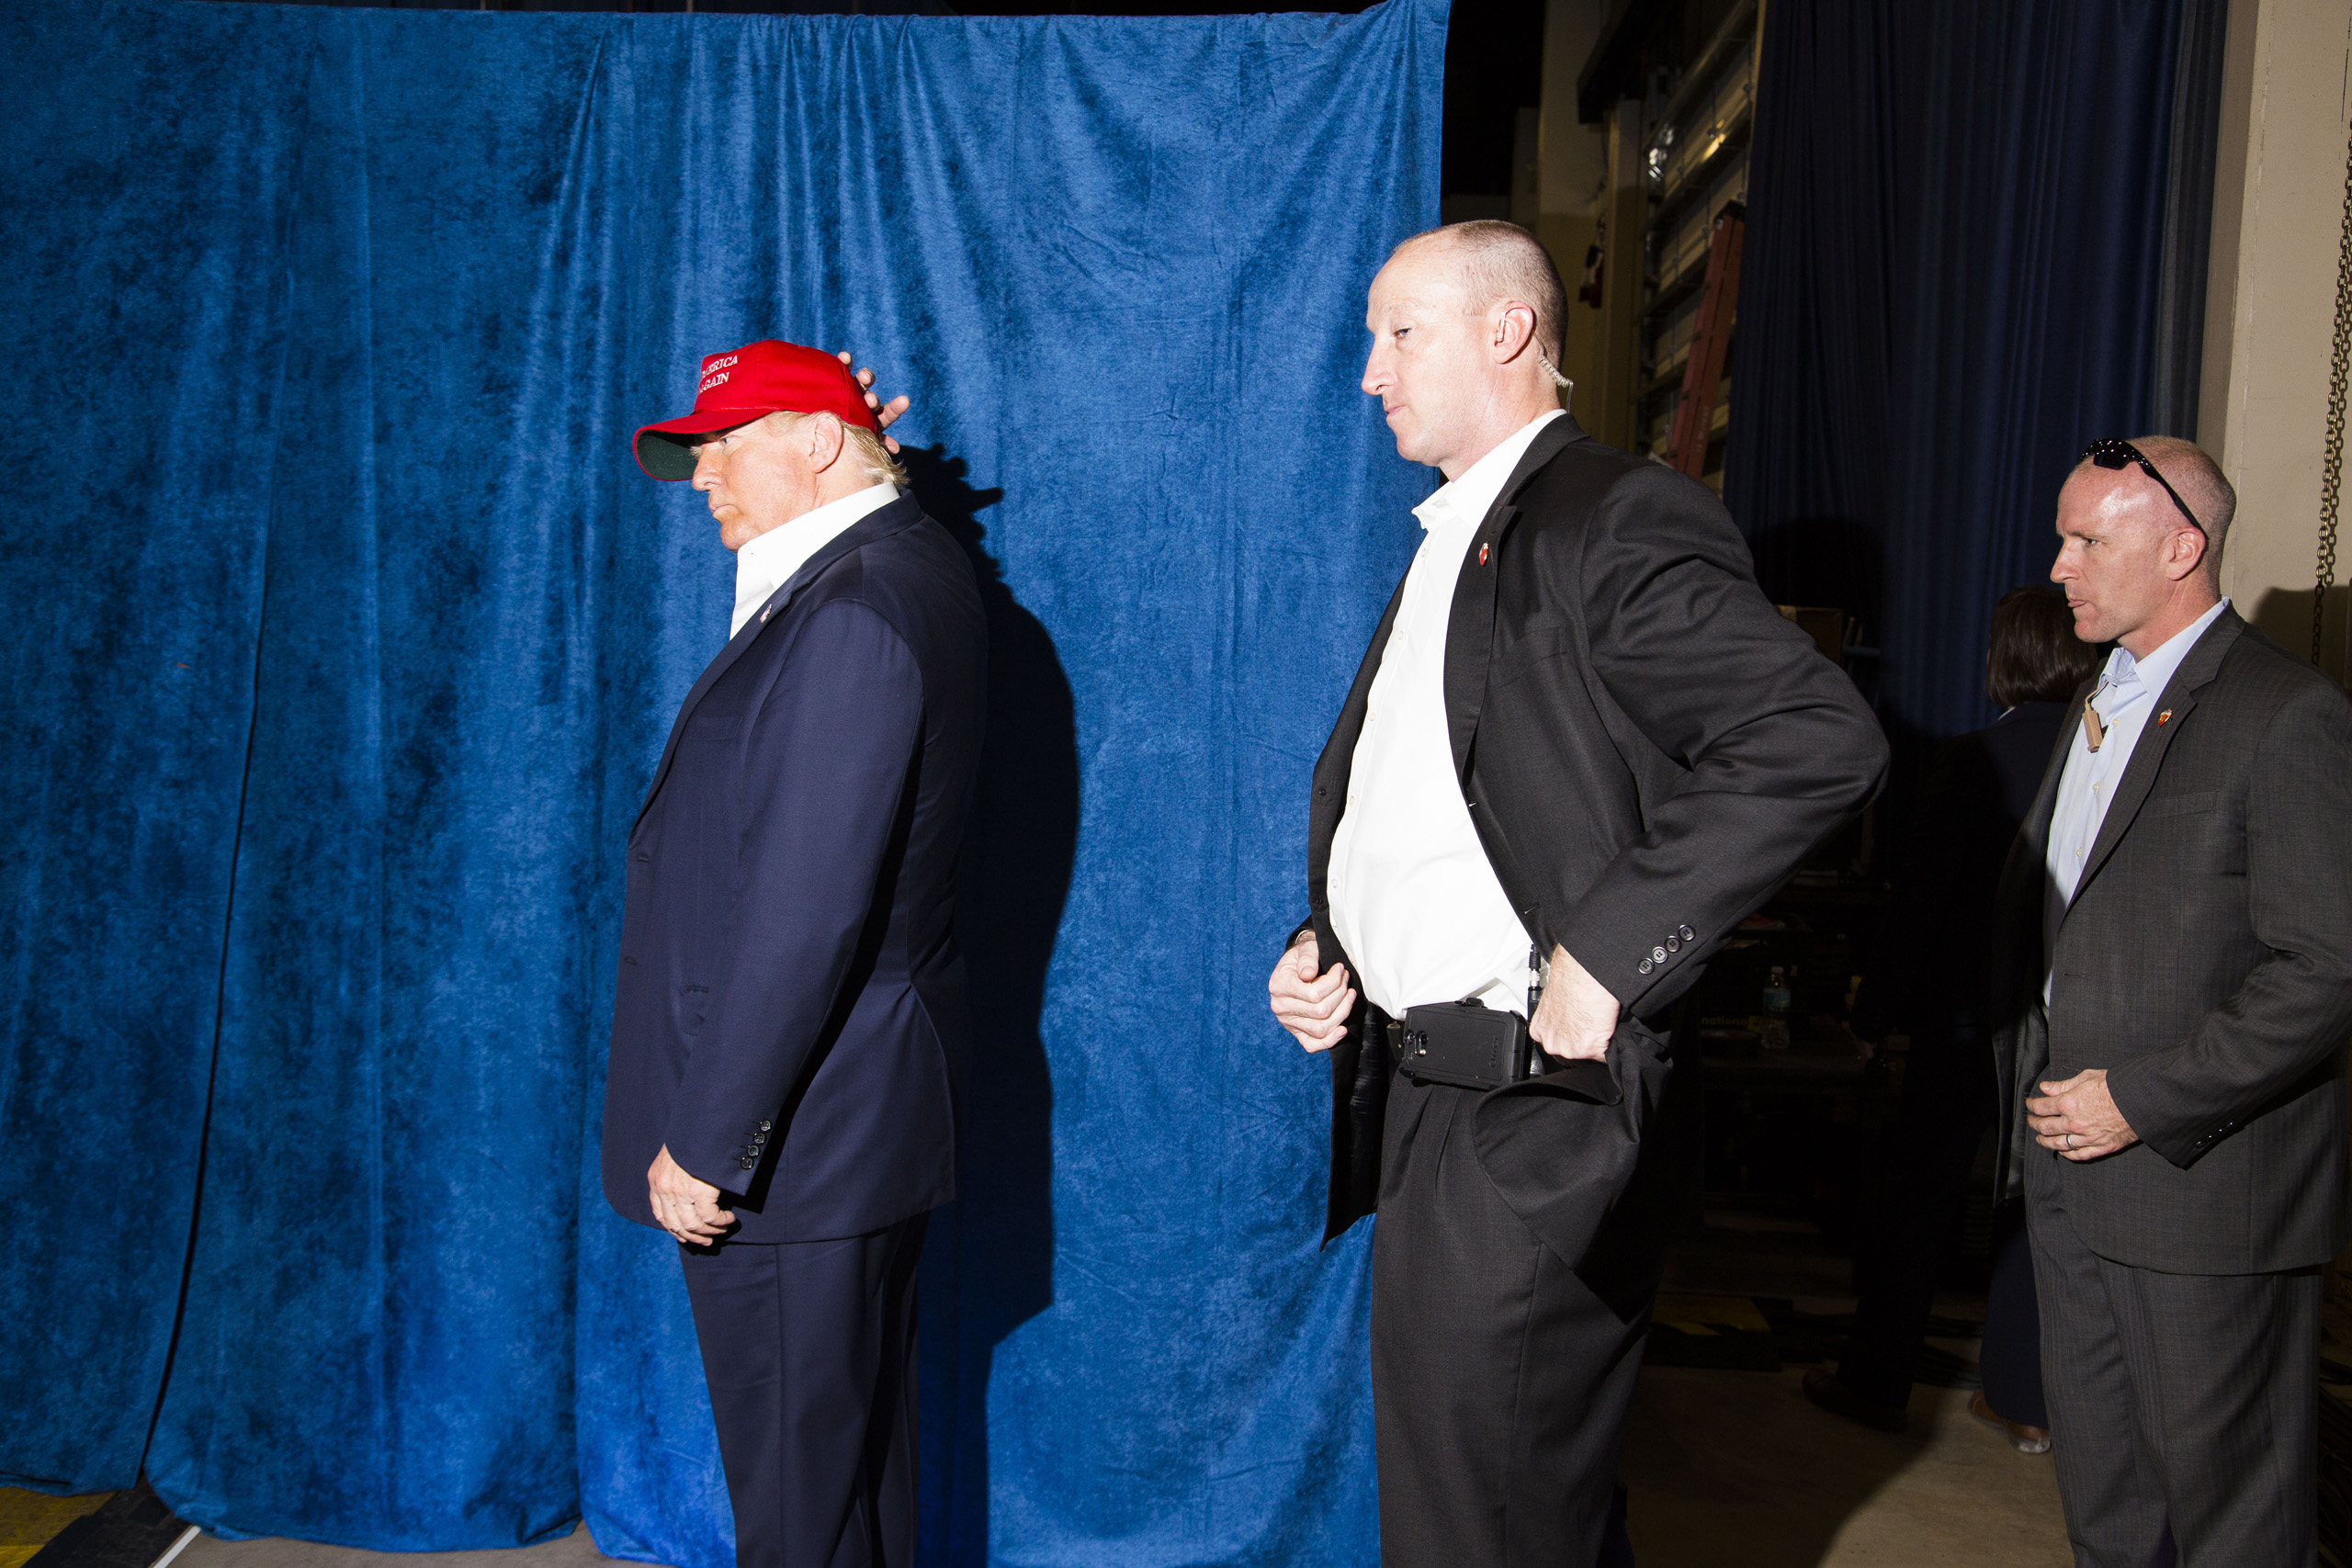 Republican presidential candidate Donald Trump backstage at a campaign rally in Sarasota, Fla. Nov. 28, 2015.